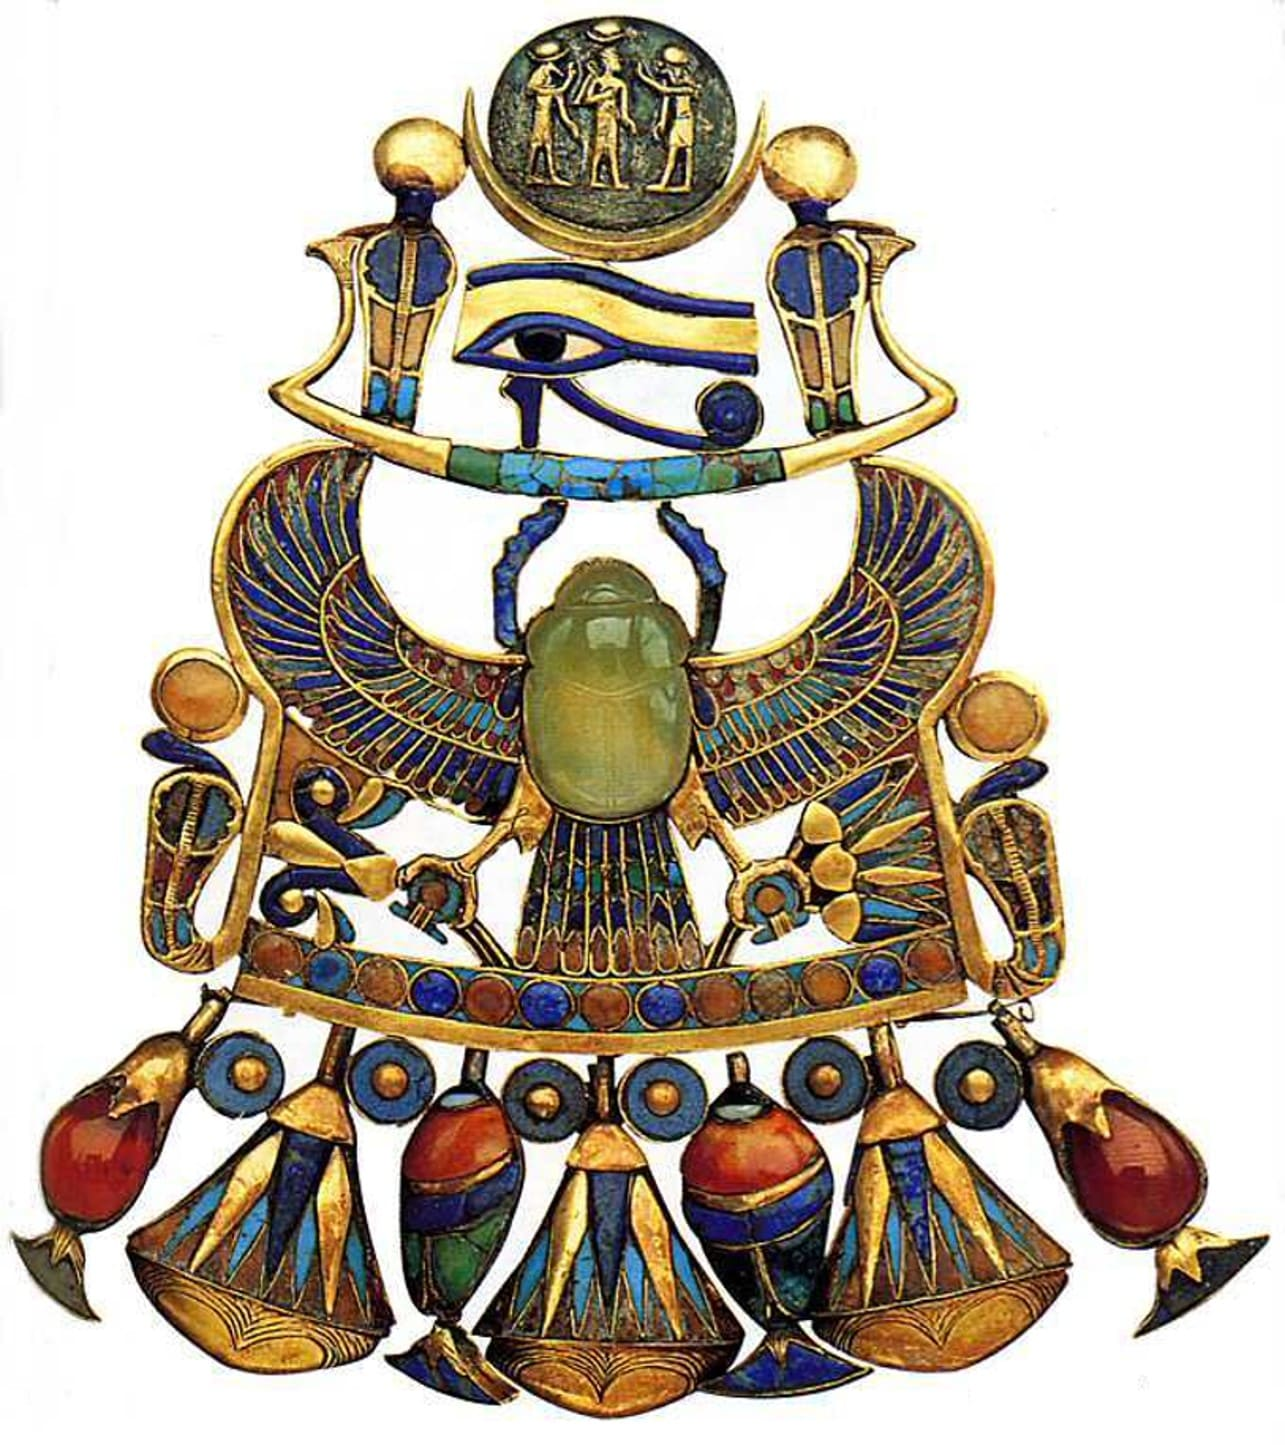 Ornament of the most famous pharaoh